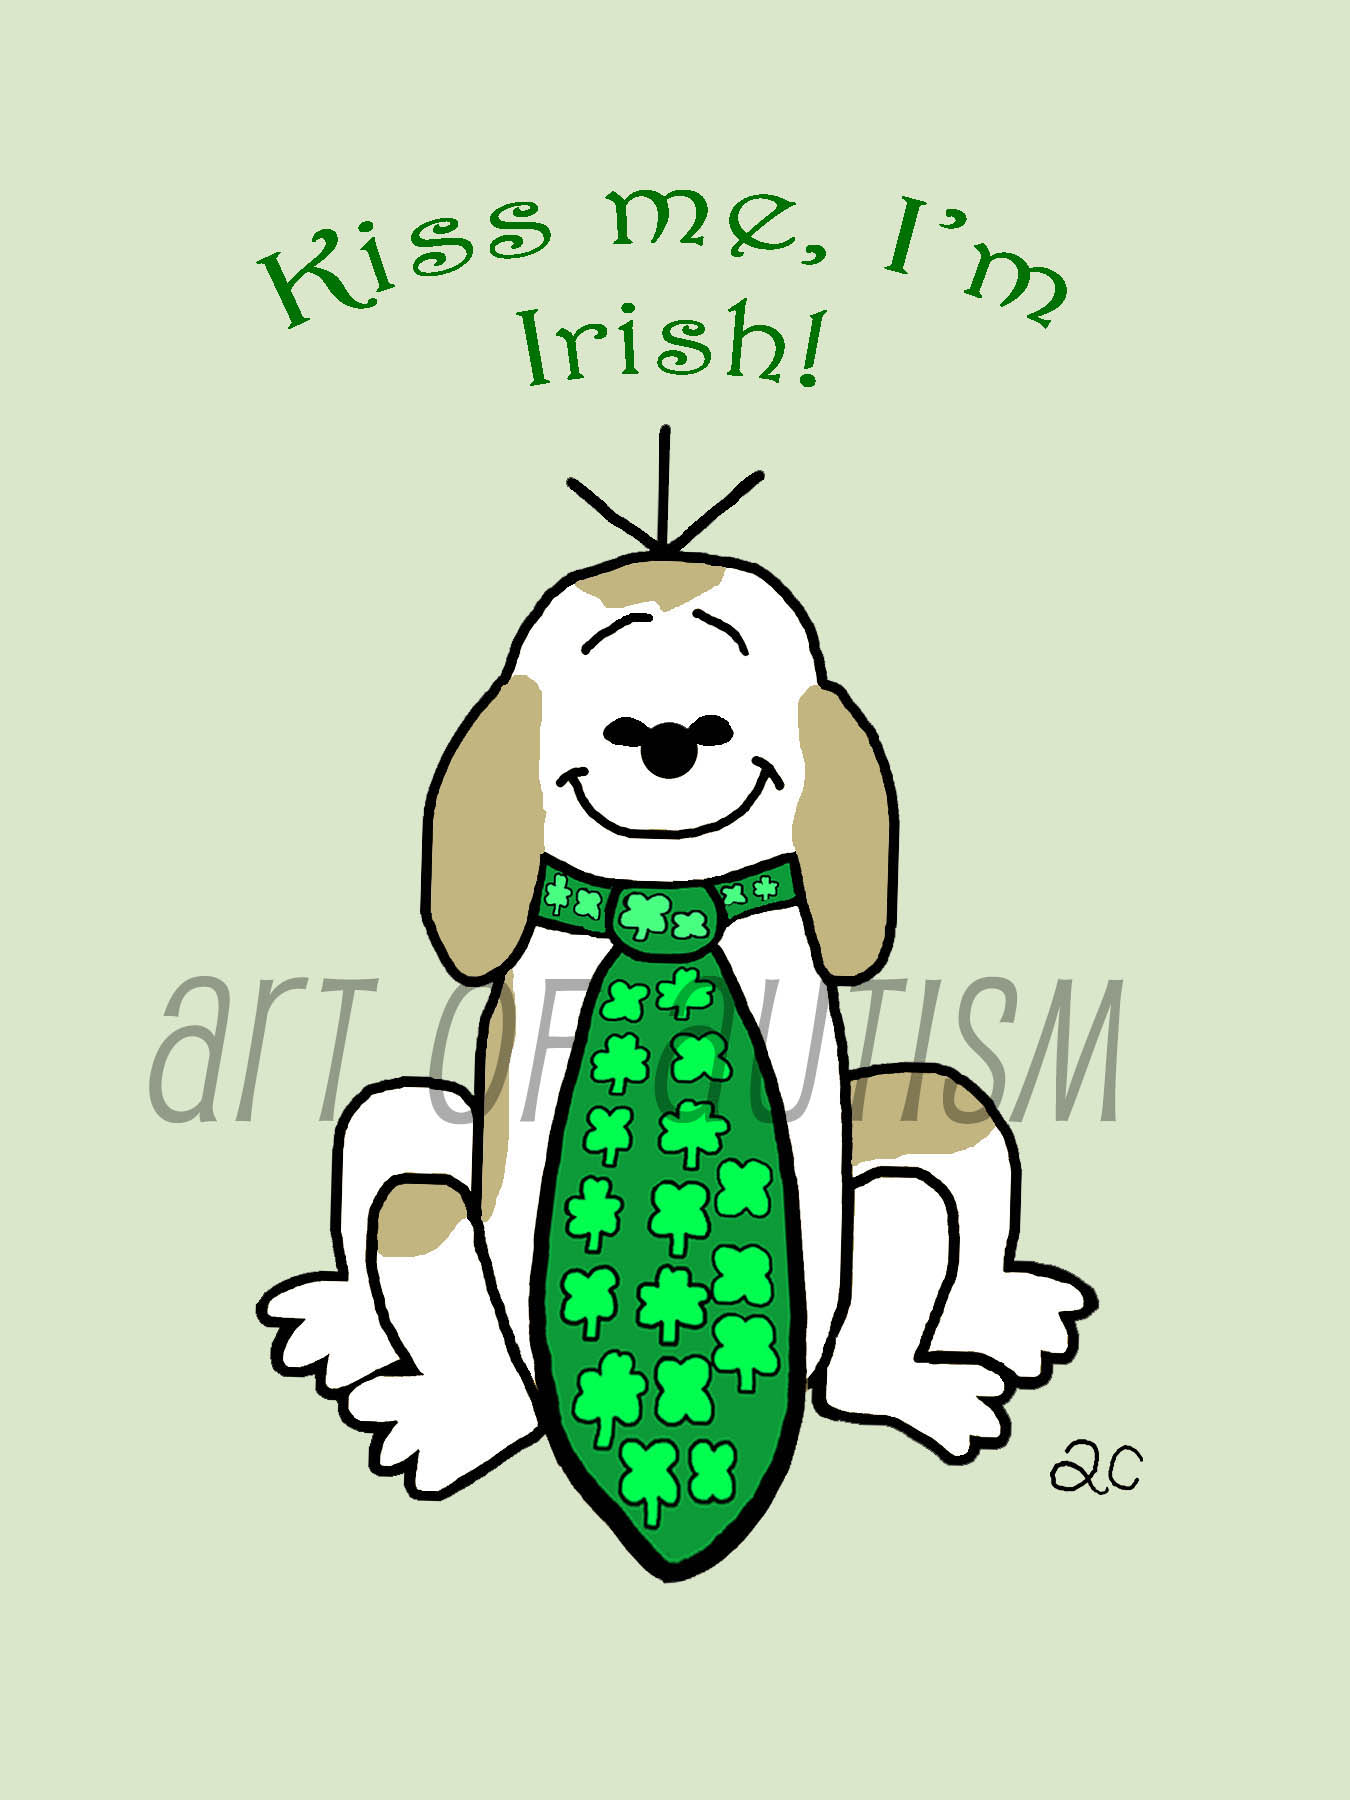 19-006 Dog and Tie